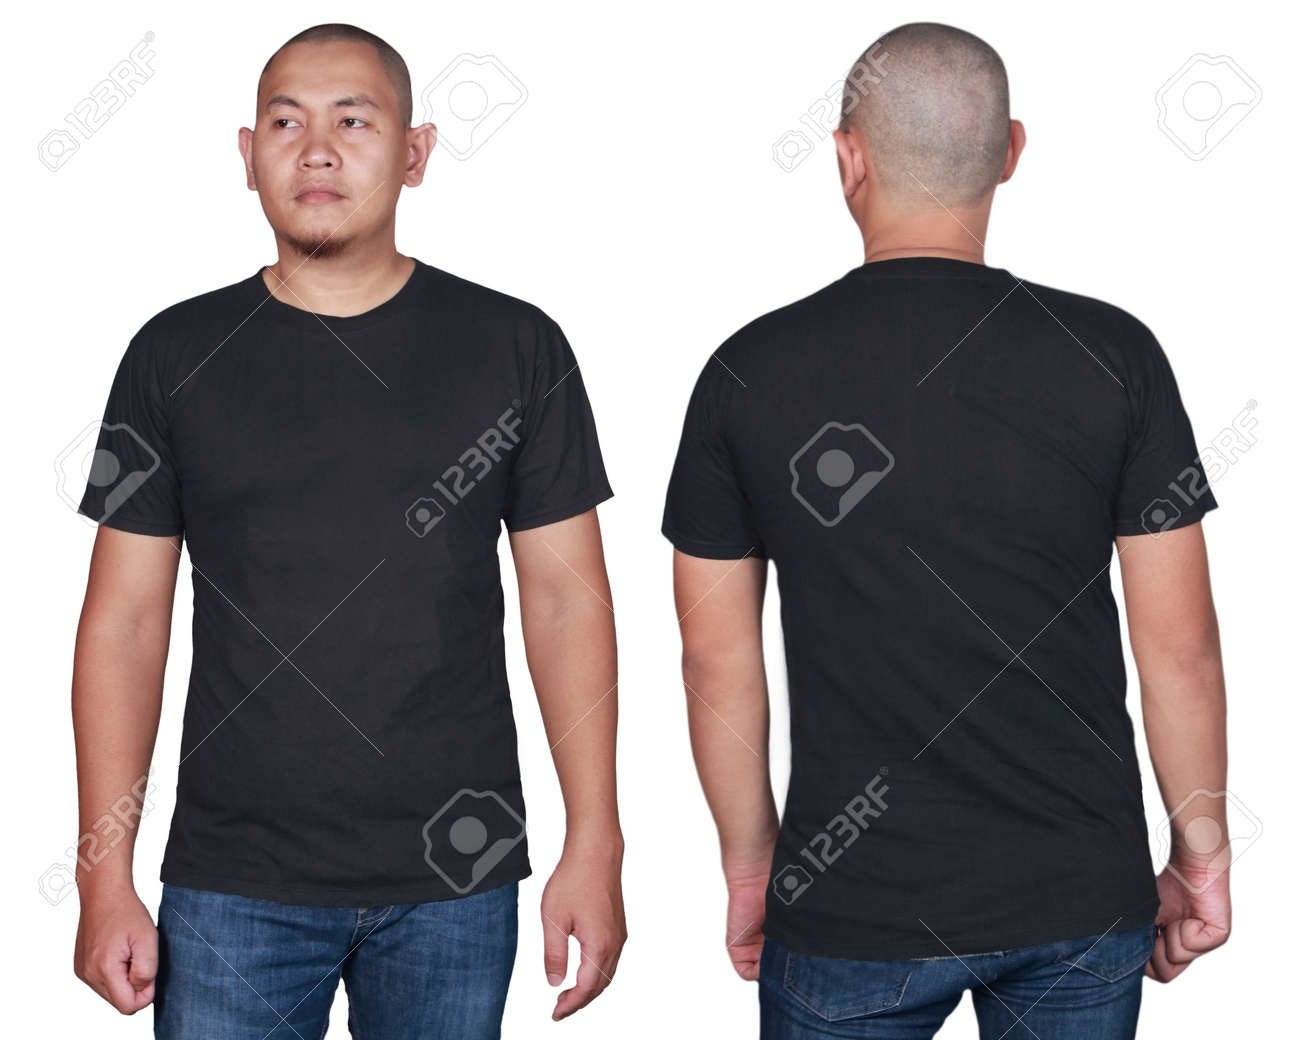 Black T Shirt Mock Up Front And Back View Isolated Male Model